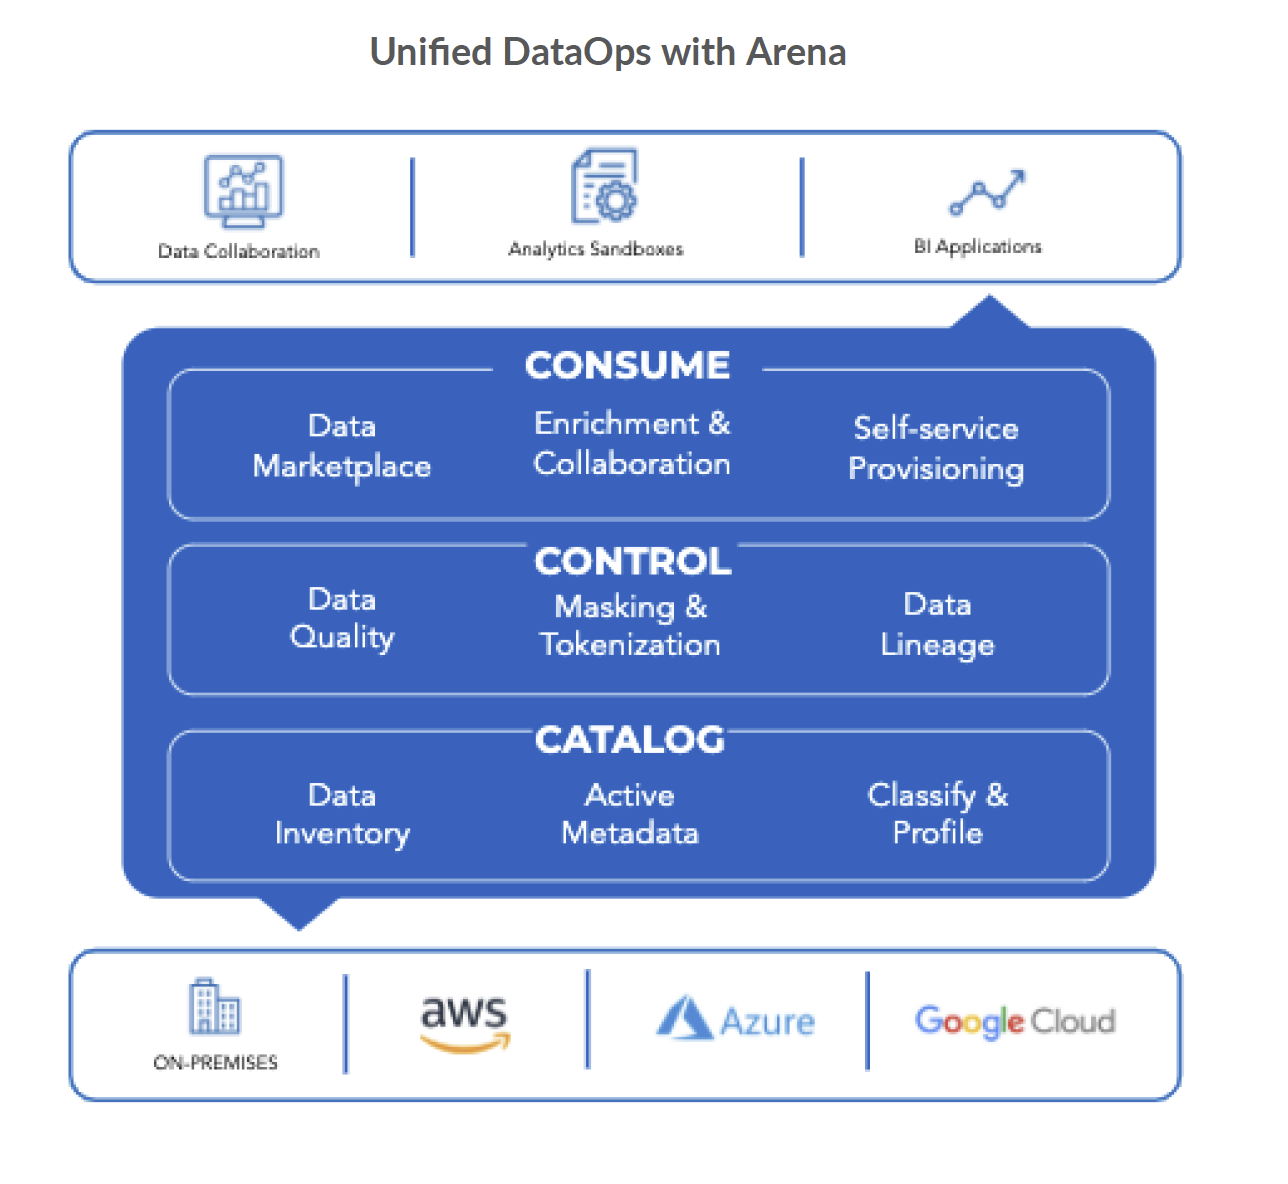 Unified DataOps with Arena